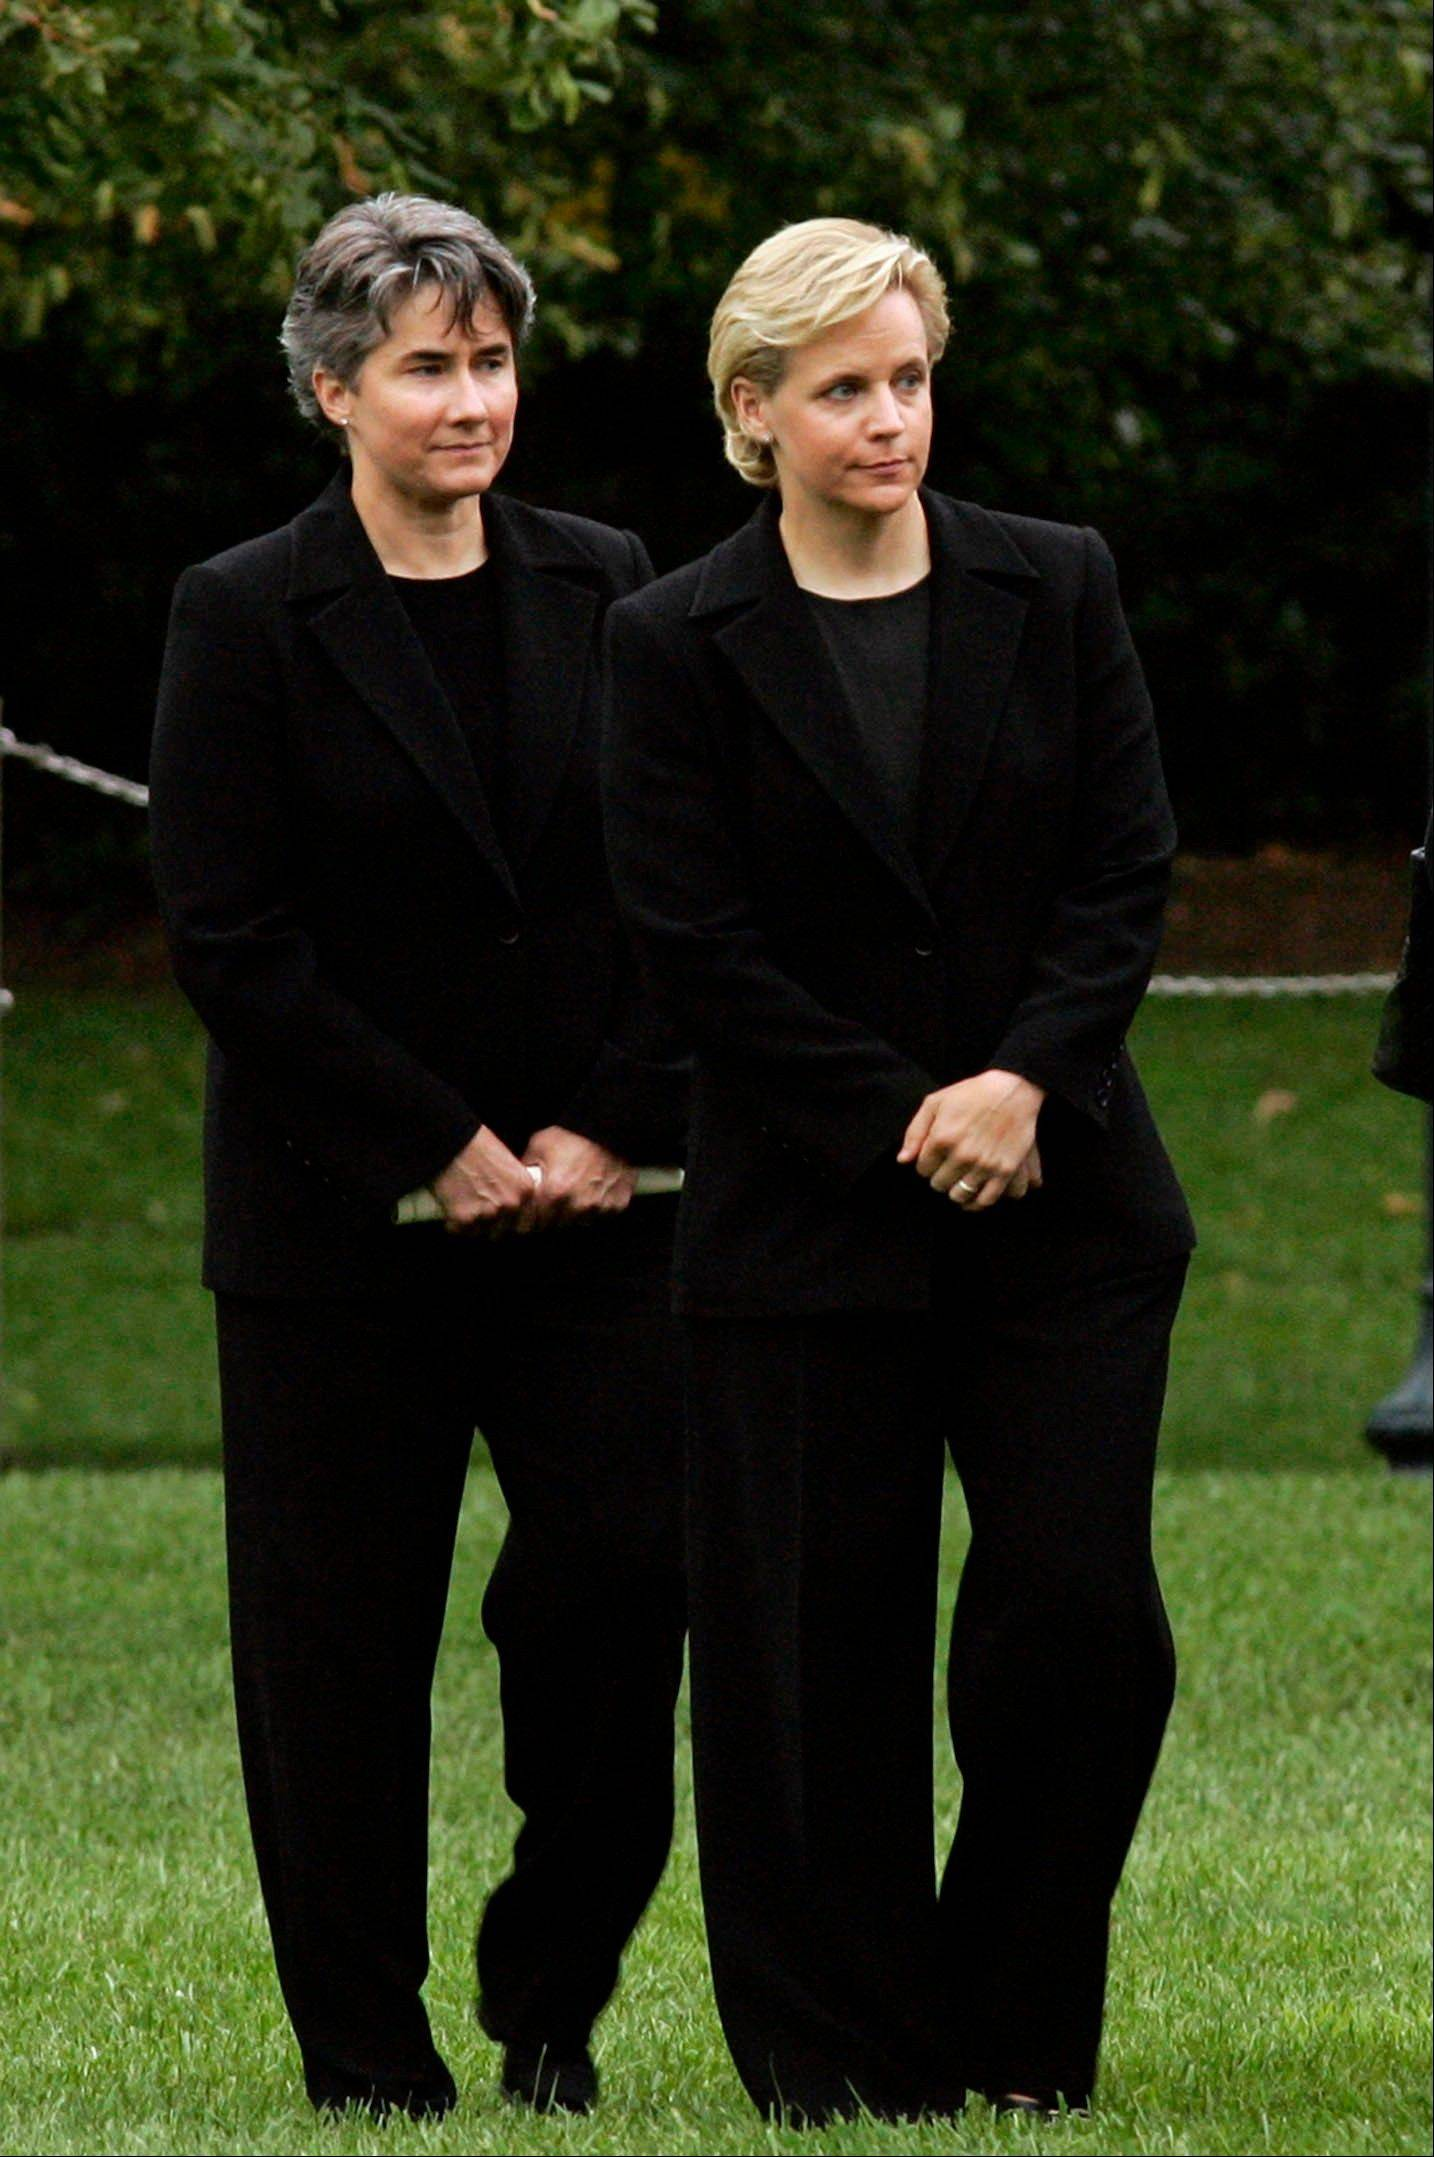 Associated Press/Sept. 11, 2006 Mary Cheney, right, the openly gay daughter of then-Vice President Dick Cheney, stands with Heather Poe, left, during a memorial observance on the South Lawn of the White House in Washington. Cheney married her longtime partner, Poe, on Friday.